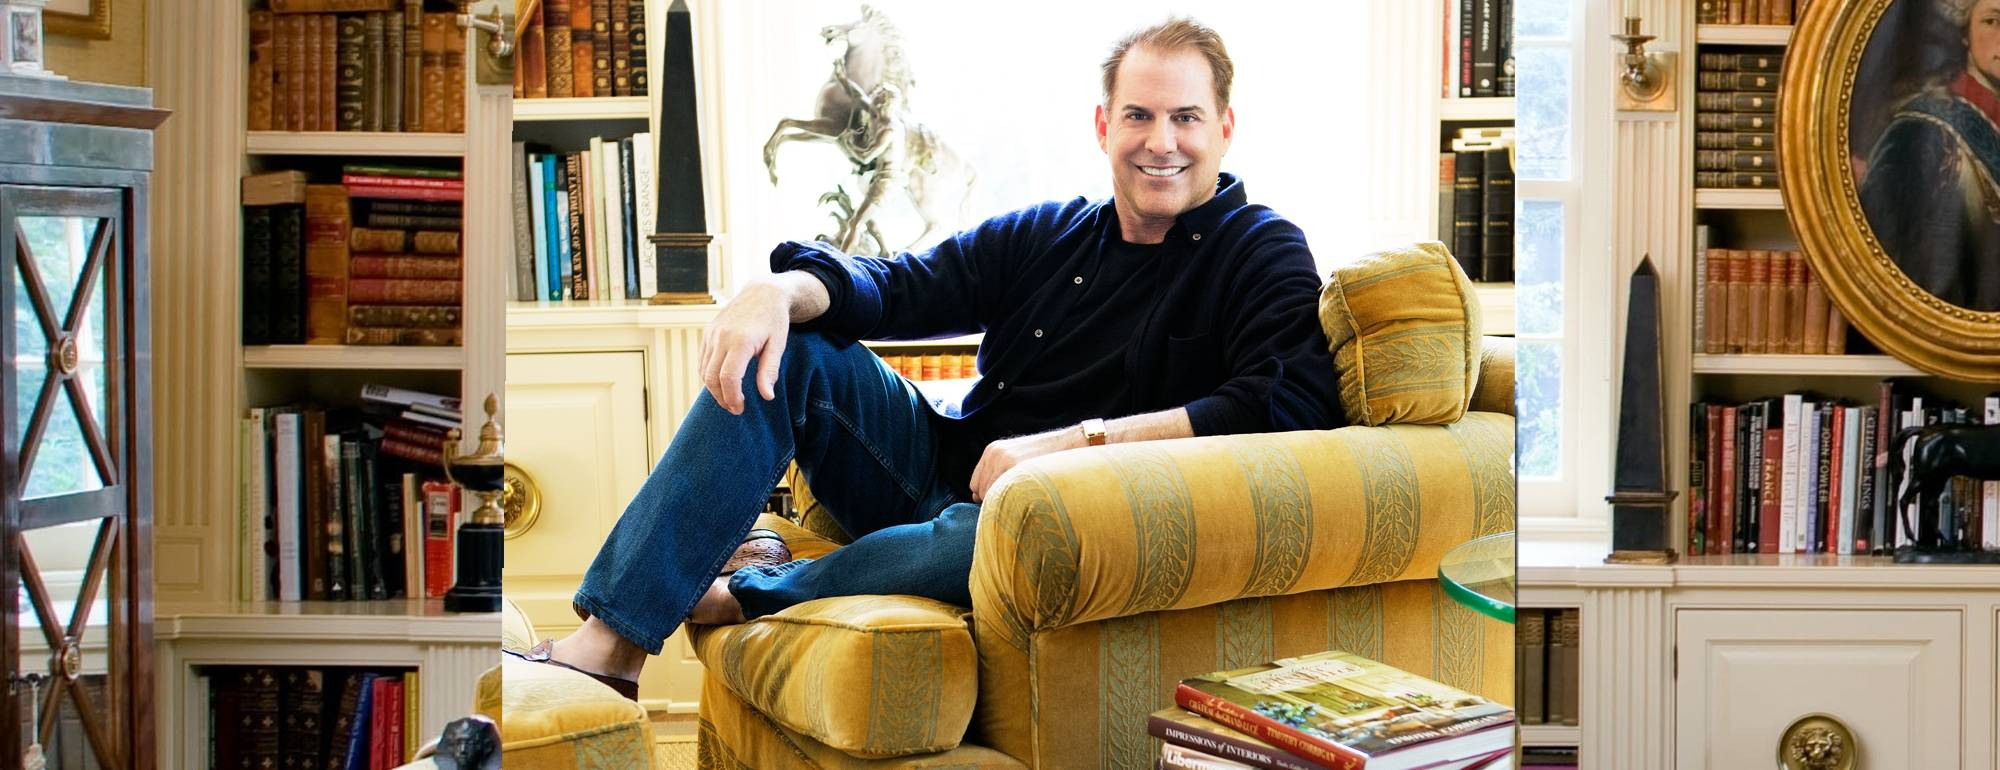 Top Interior Designer U0026 Famous Interior Designs   Timothy Corrigan